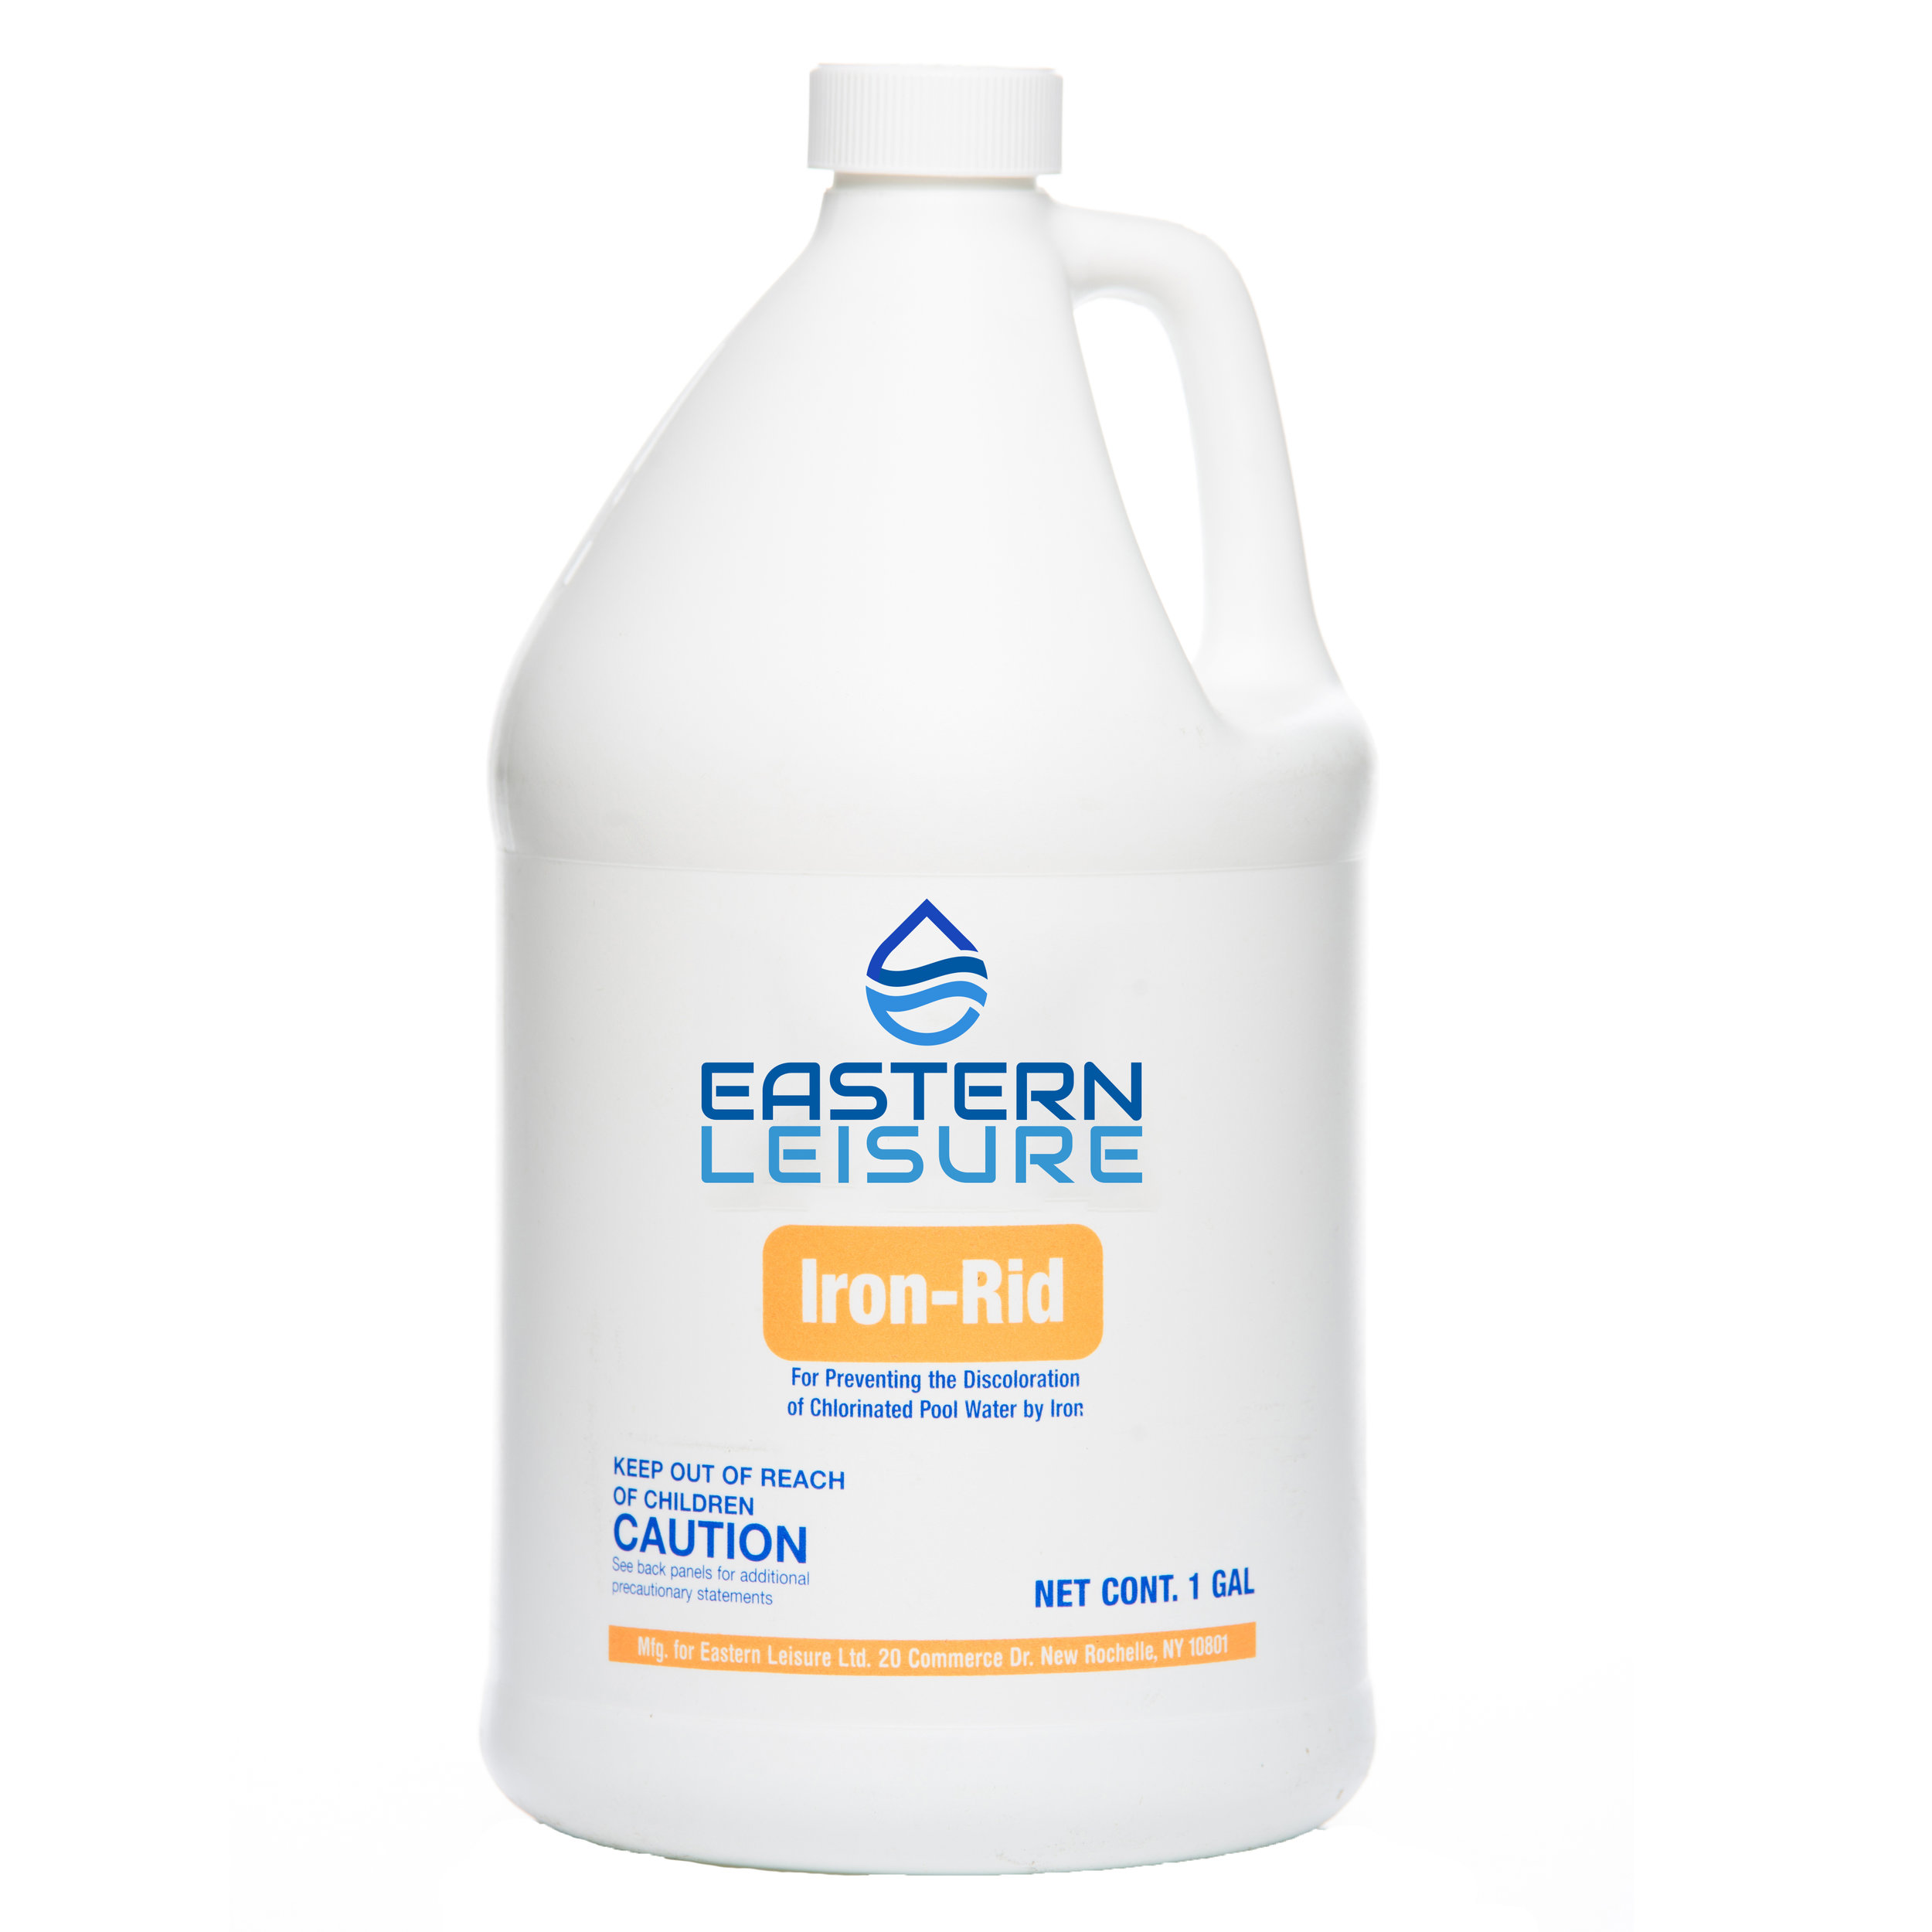 Iron Rid   EL109G - 1 gal. bottle, 4/case  Removes iron from pool water and prevents discoloration.  Dosage: 1 gal. treats 30,000 gal.